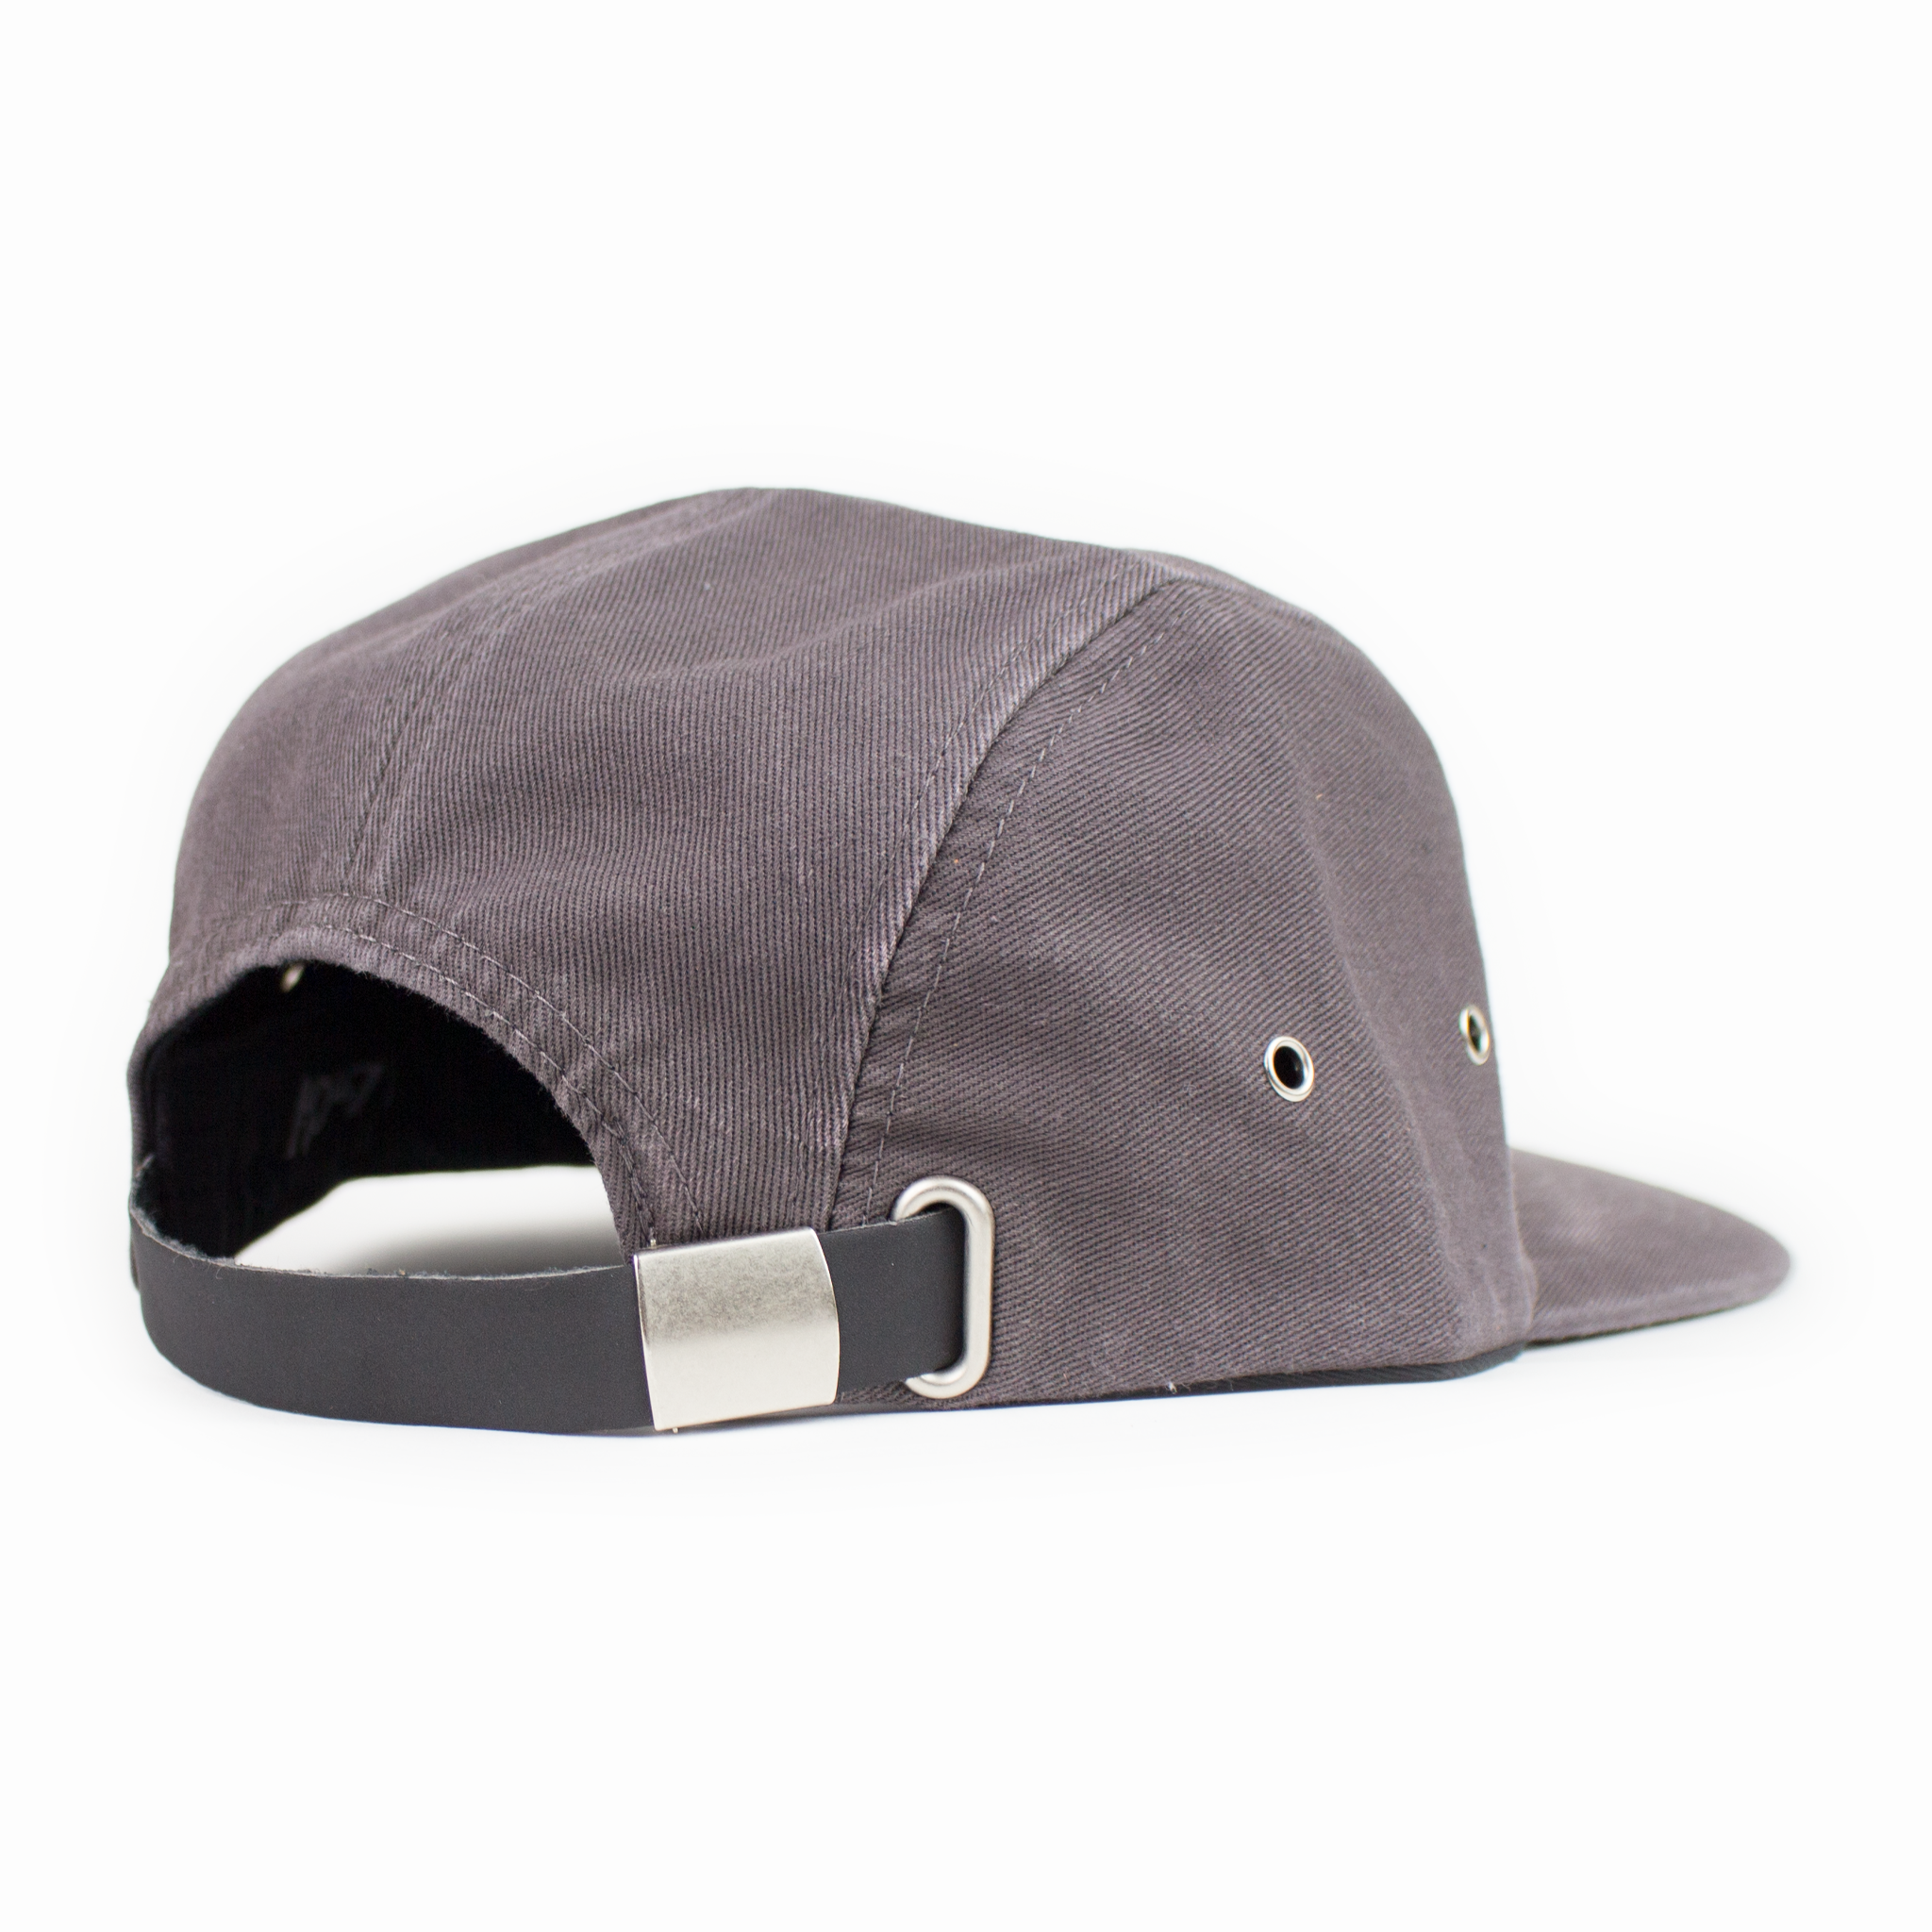 DIGITAL WAVE 5-PANEL CAMP HAT, FADED GRAY